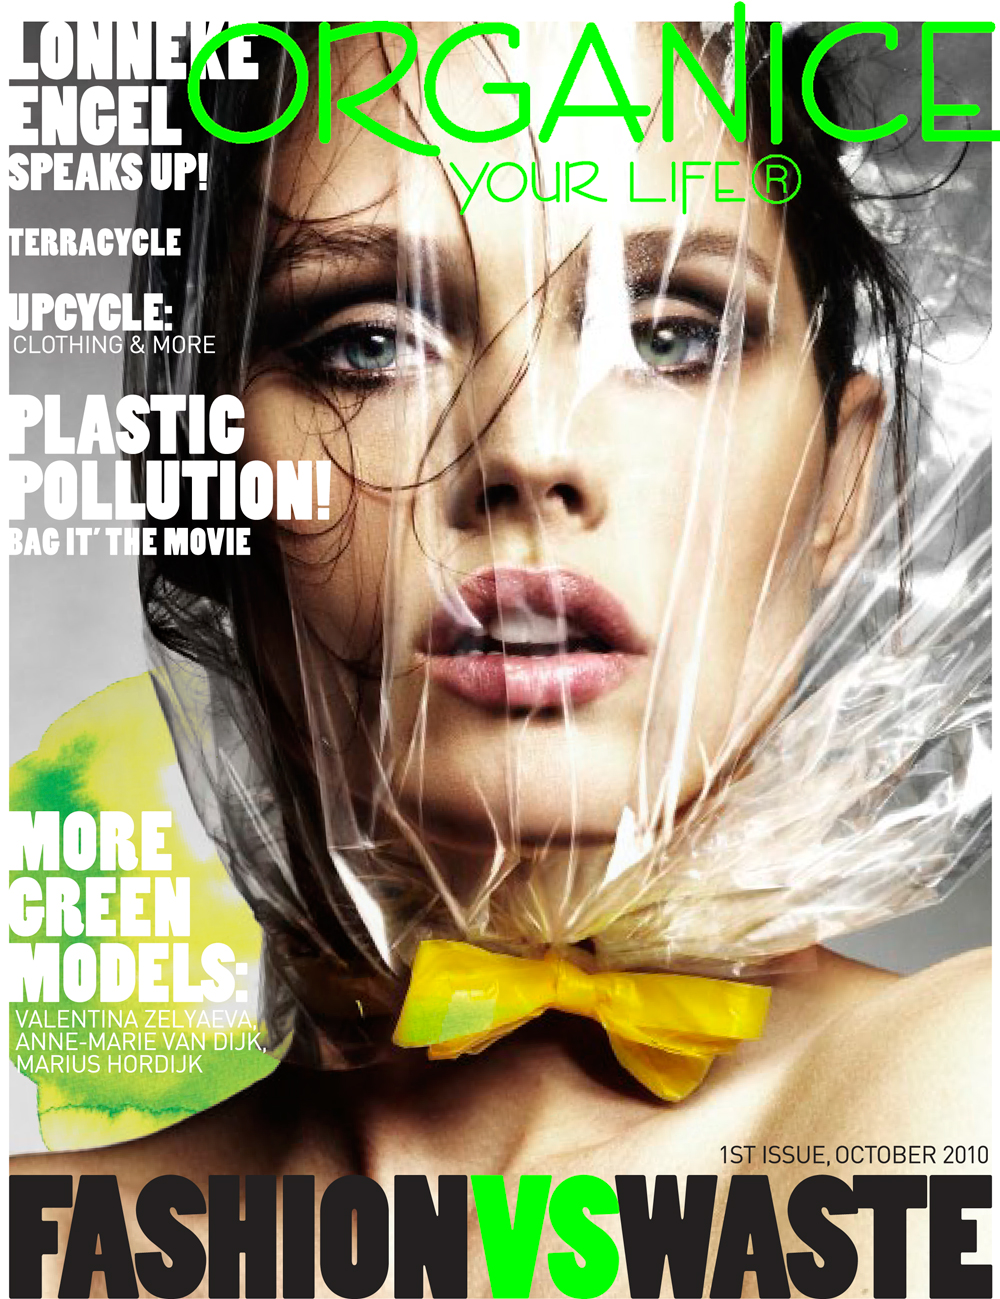 Organice Your Life October 2010 (photography: Alique) / exclusive interview with Lonneke Engel / fashion models beauty secrets / via fashioned by love british fashion blog